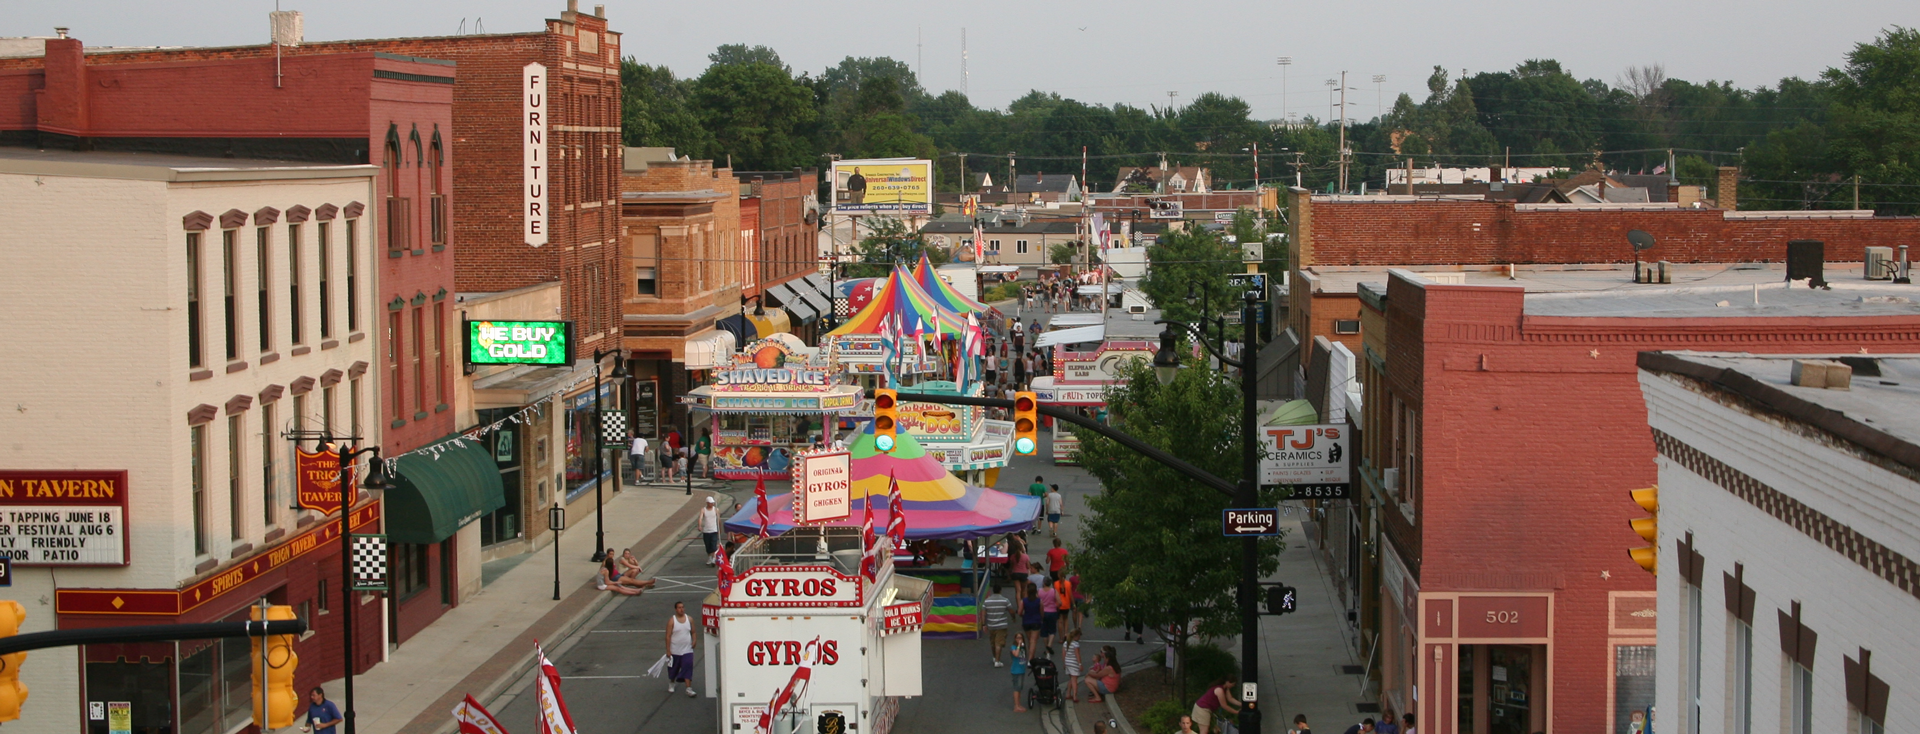 The Best Festivals and Events in Fort Wayne, Indiana